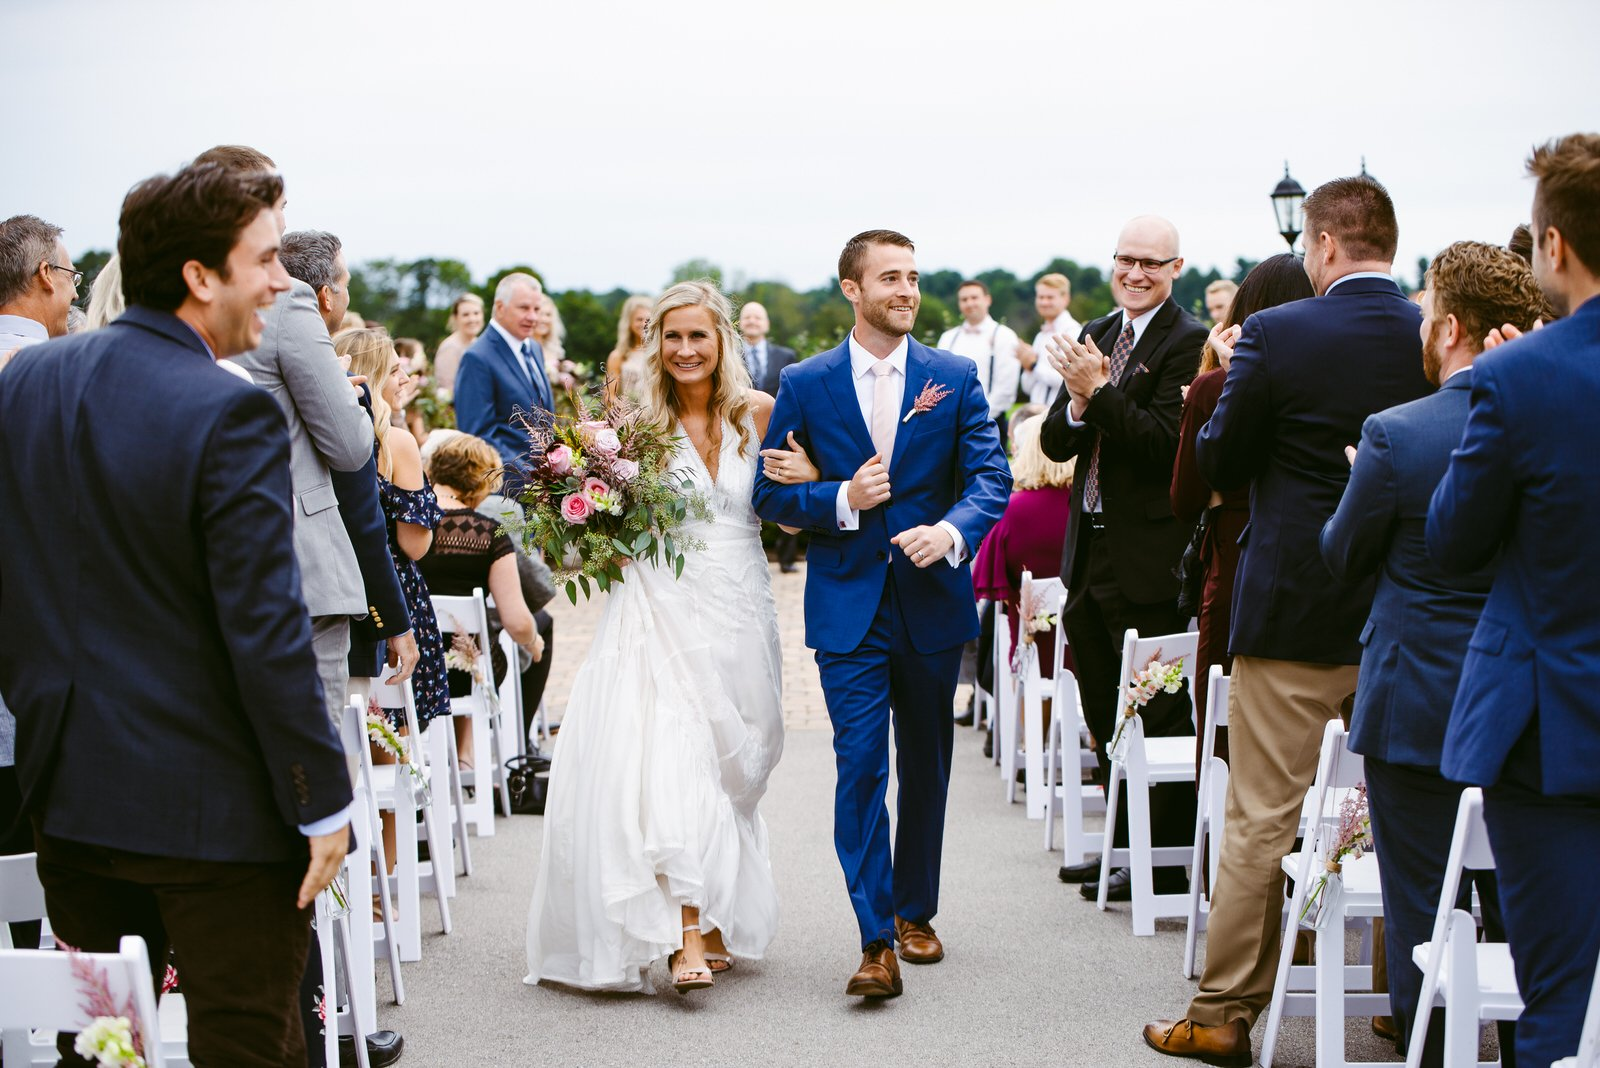 happy bride in boho dress and groom with blue suit stride down aisle at Thoroughbred Center Lexington while guests clap and smile